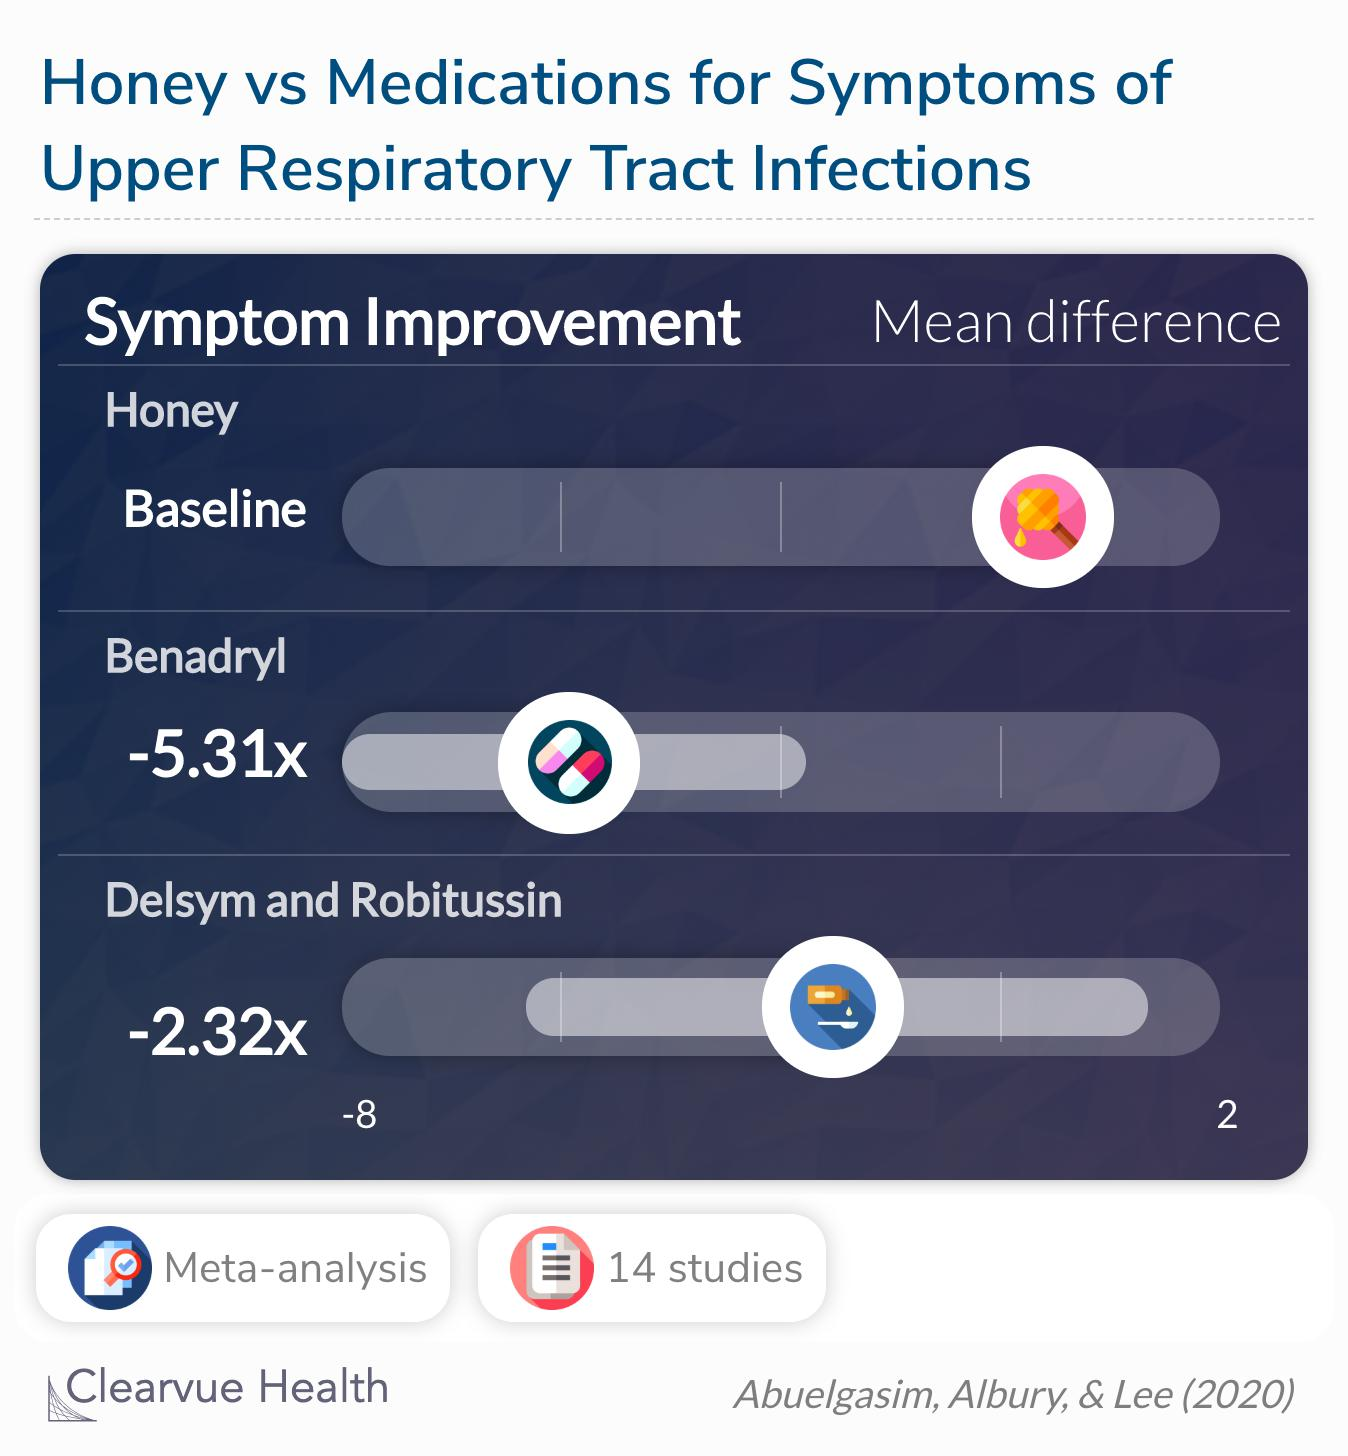 Honey was significantly better than Benadryl for symptom improvement, but not Delsym and Robitussin.